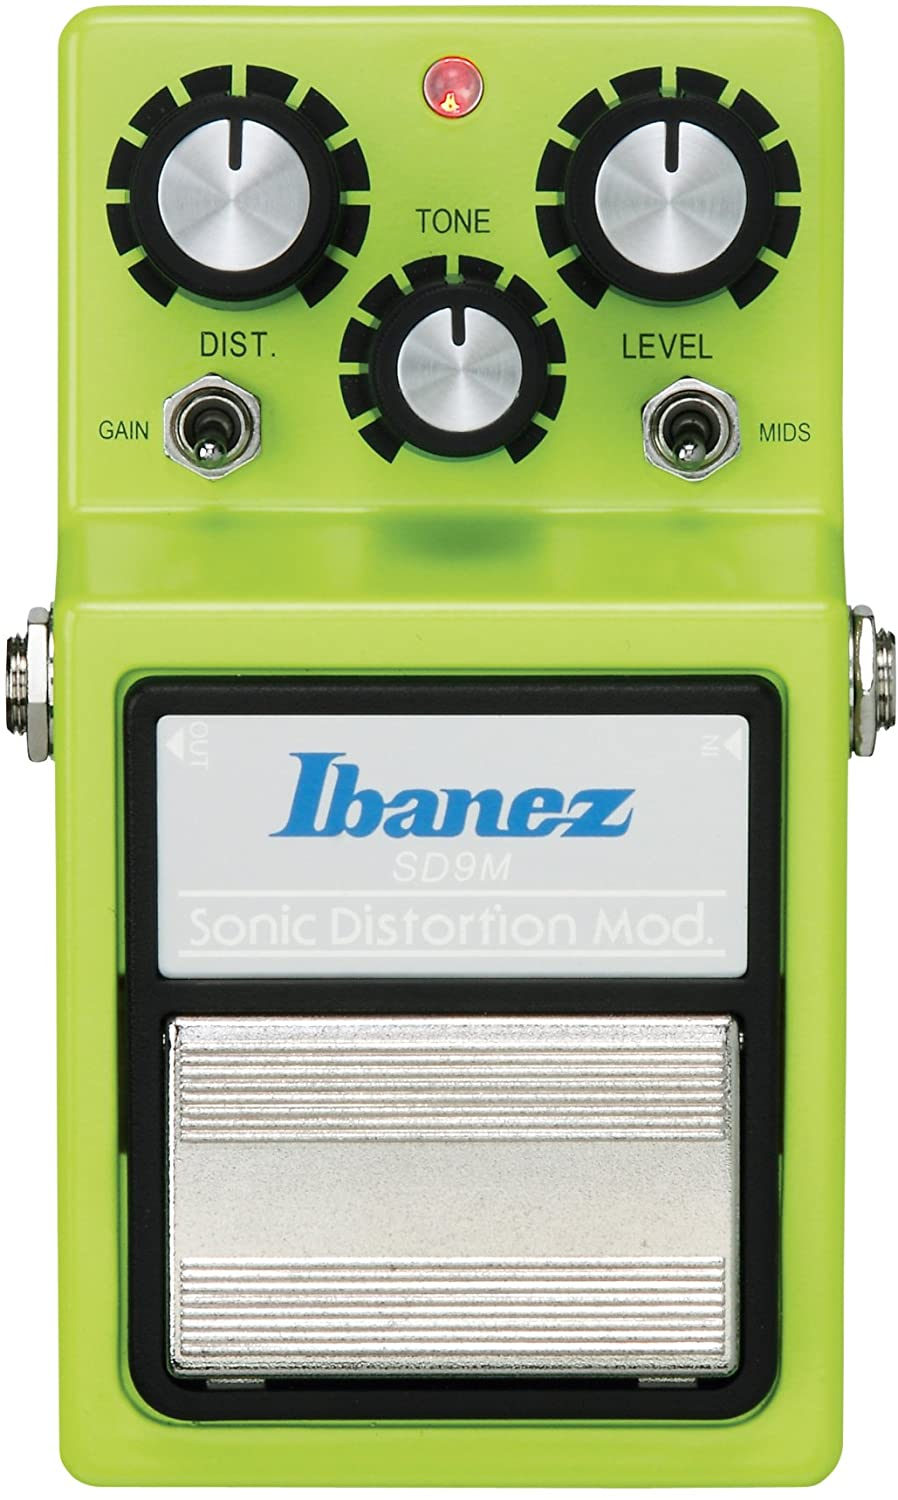 Ibanez SD-9M Sonic Distortion Guitar Effect Pedal